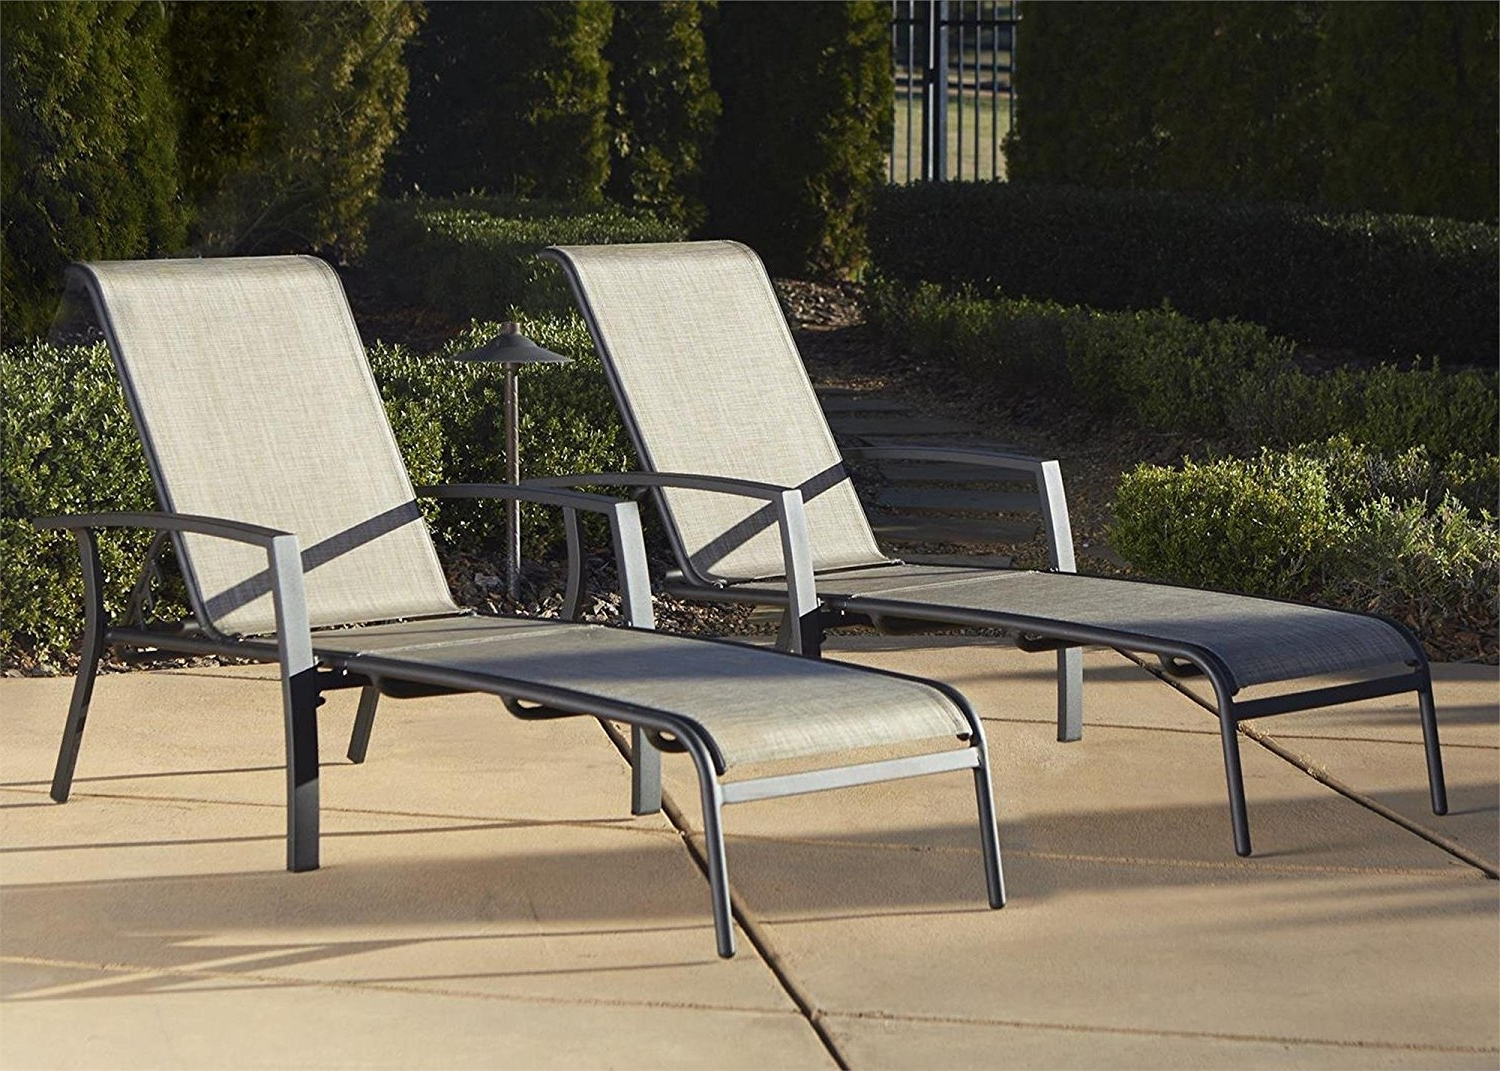 Well Known Amazon: Cosco Outdoor Adjustable Aluminum Chaise Lounge Chair For Outdoor Cast Aluminum Chaise Lounge Chairs (View 14 of 15)